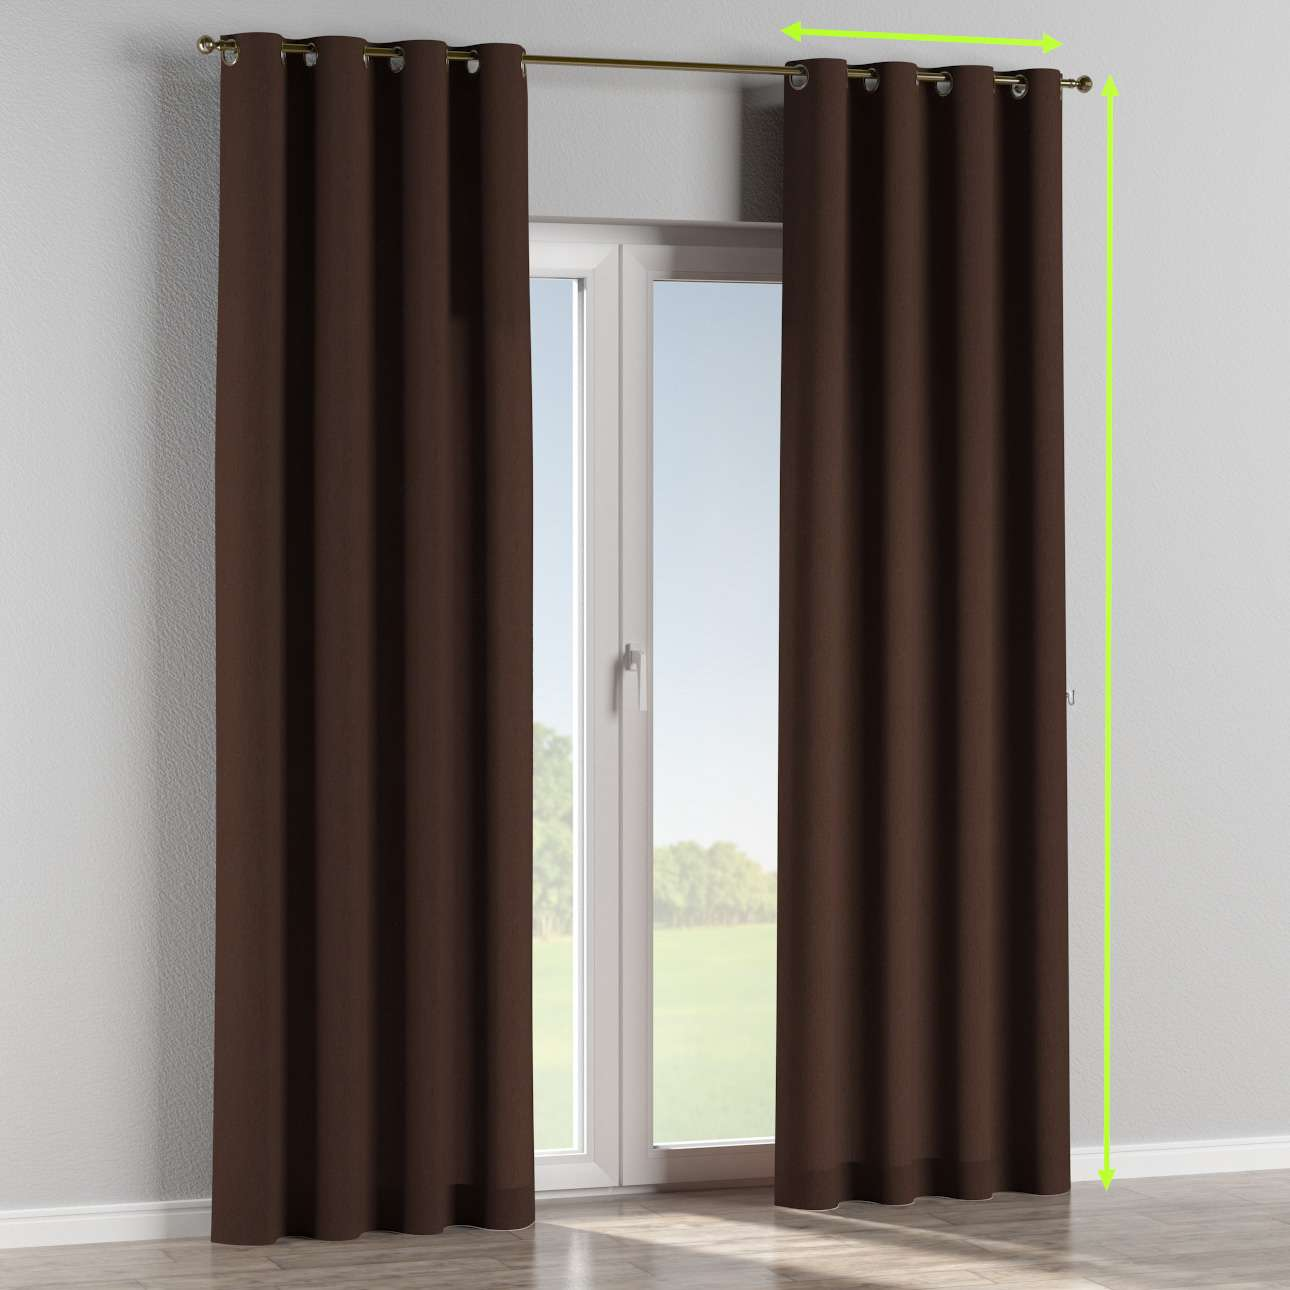 Eyelet curtain in collection Chenille, fabric: 702-18